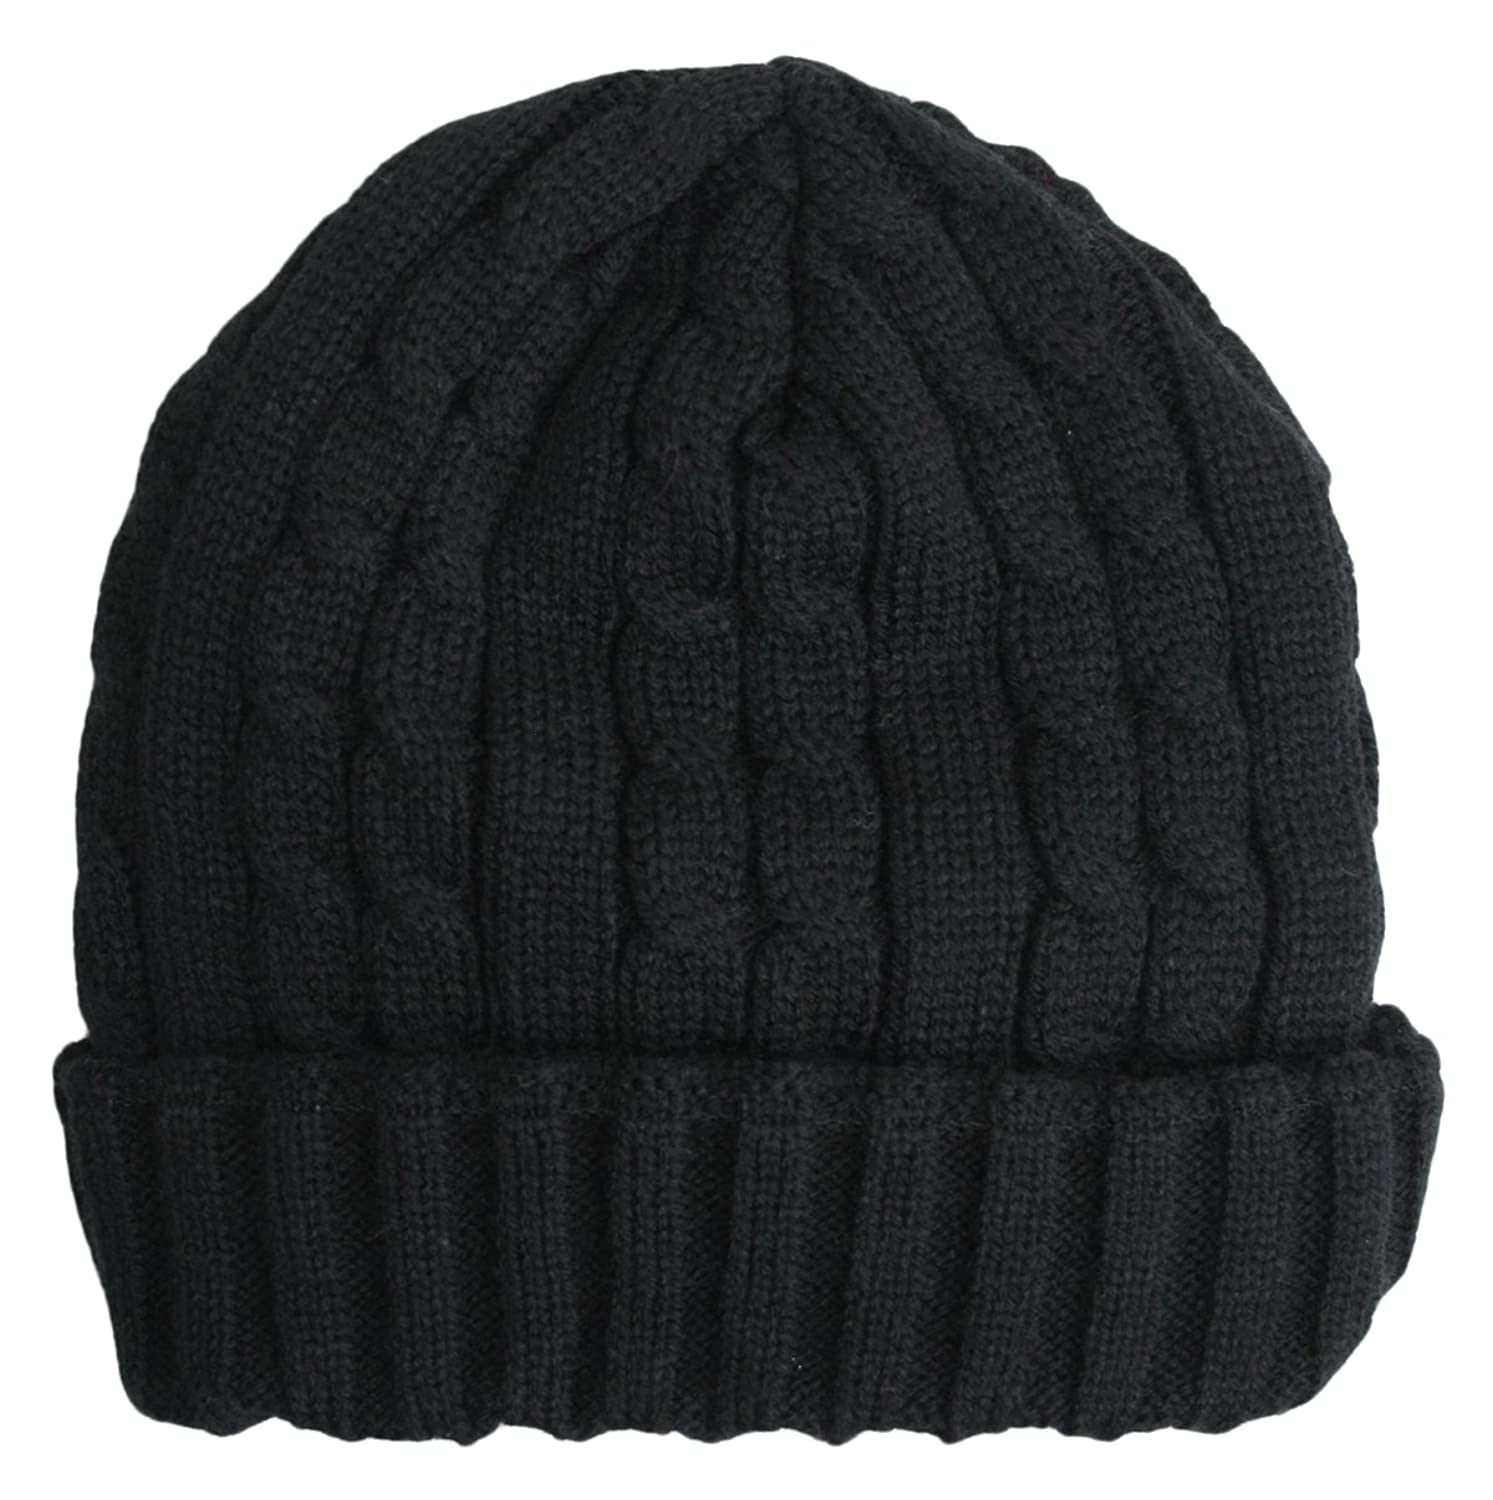 Trendy Winter Warm Soft Beanie Cable Knitted Hat Cap for Women and Men